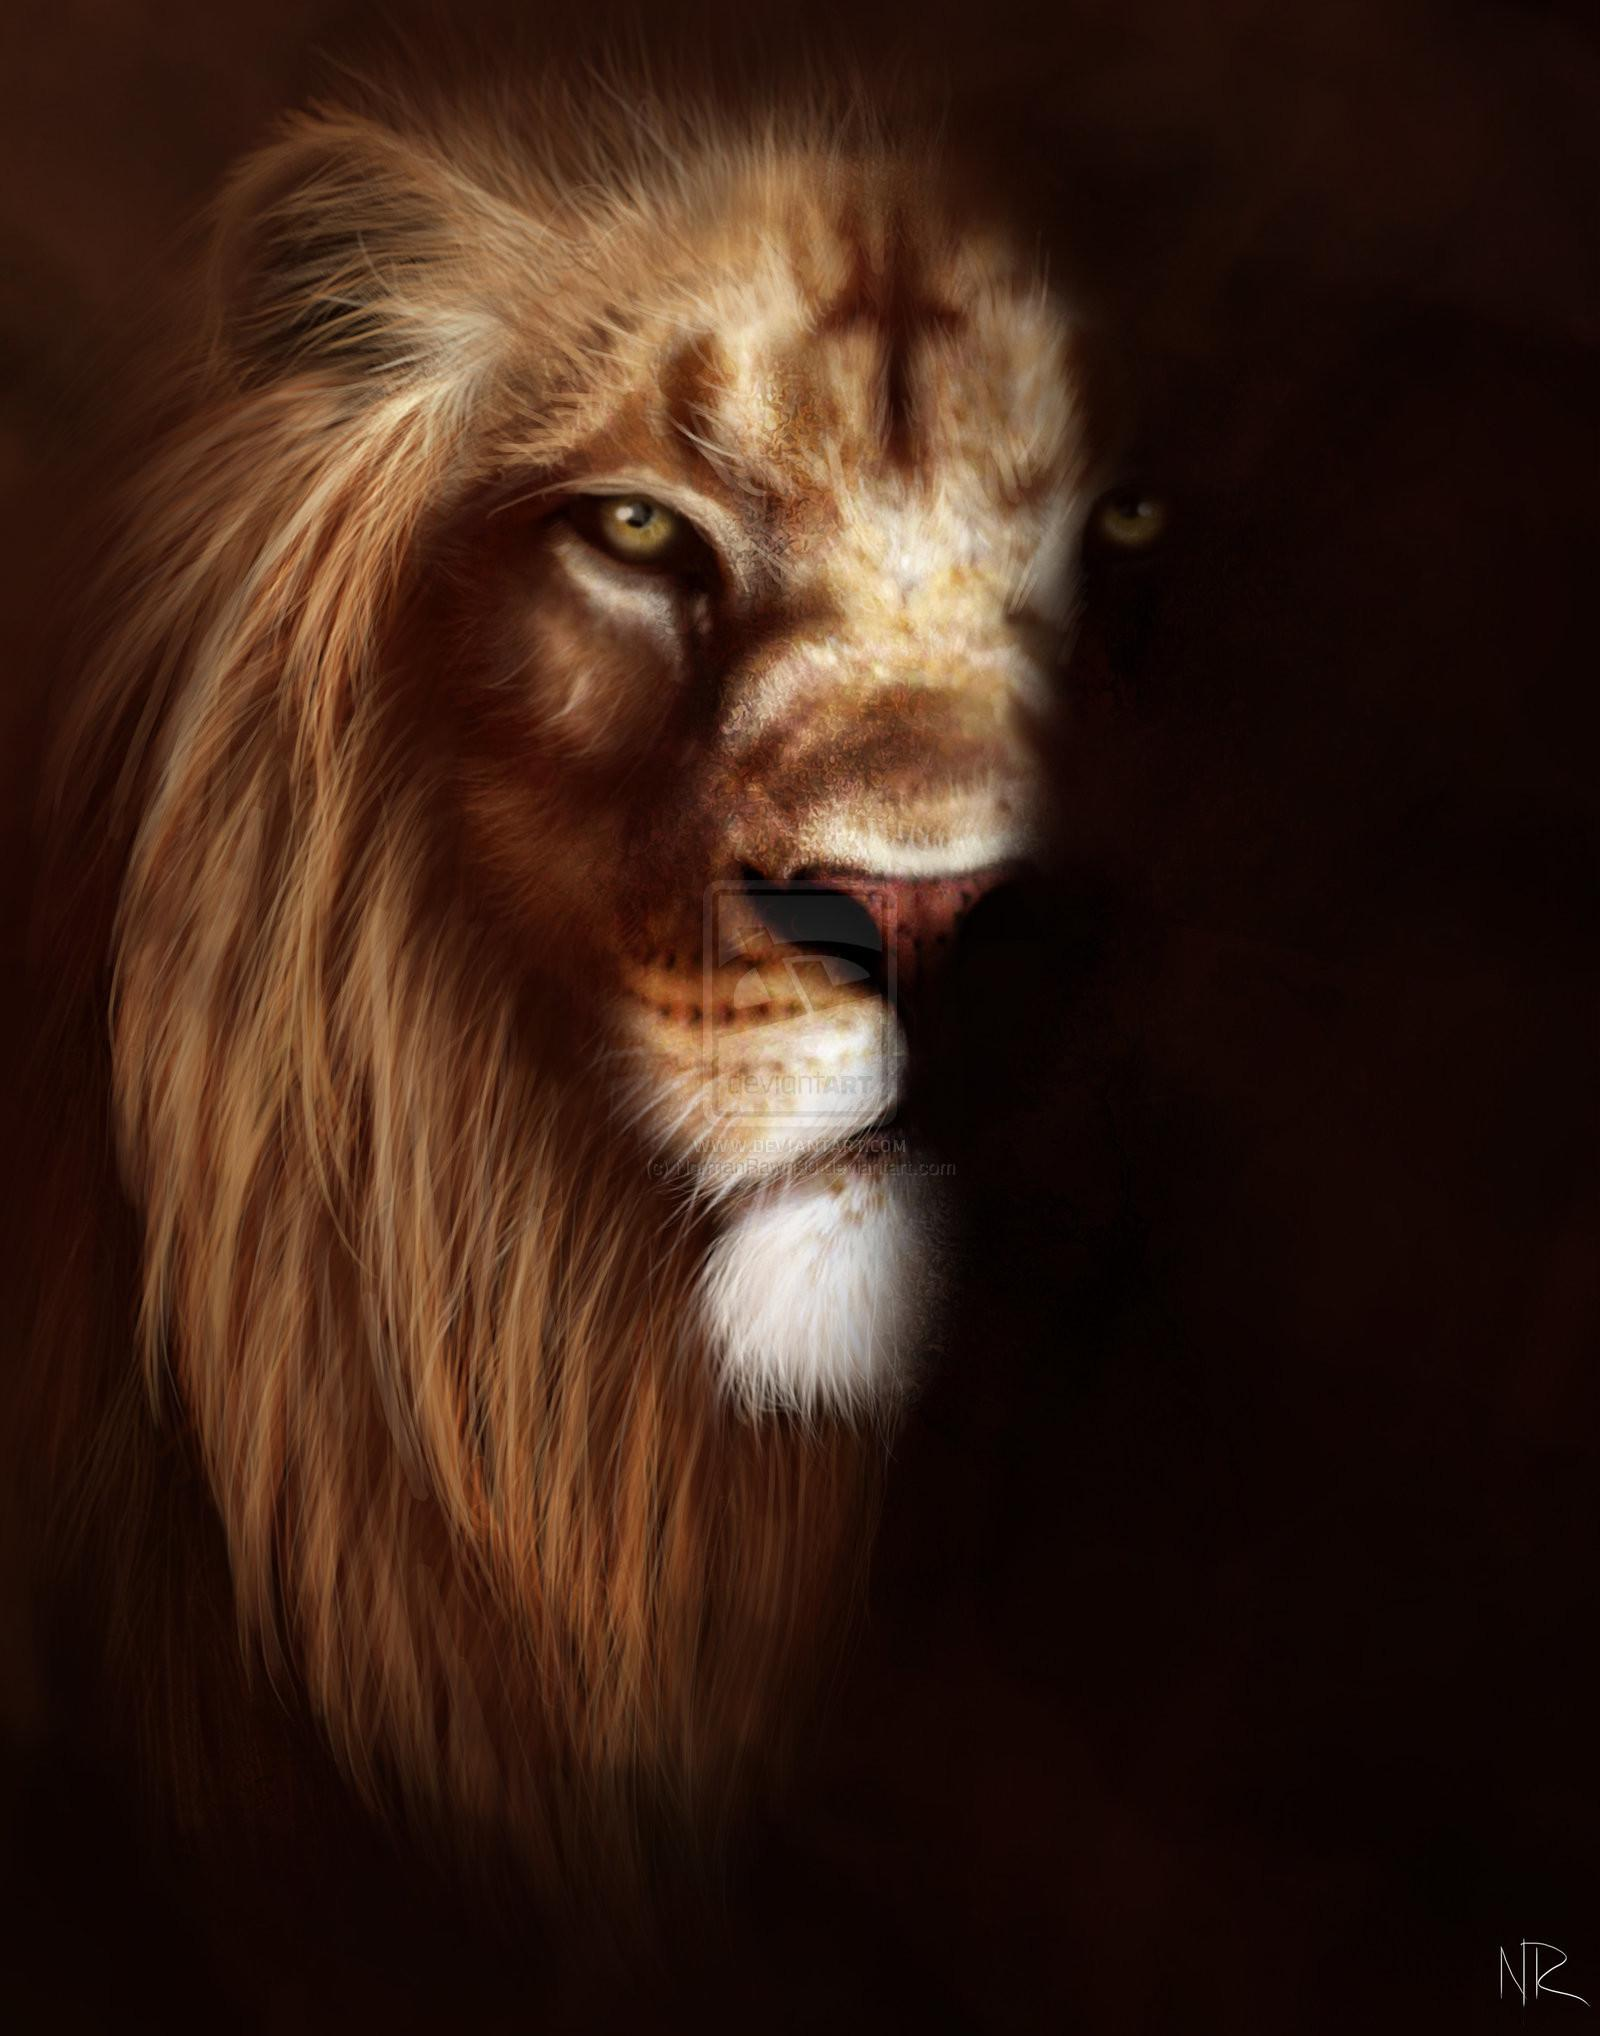 Angry Lion Wallpapers - Wallpaper Cave